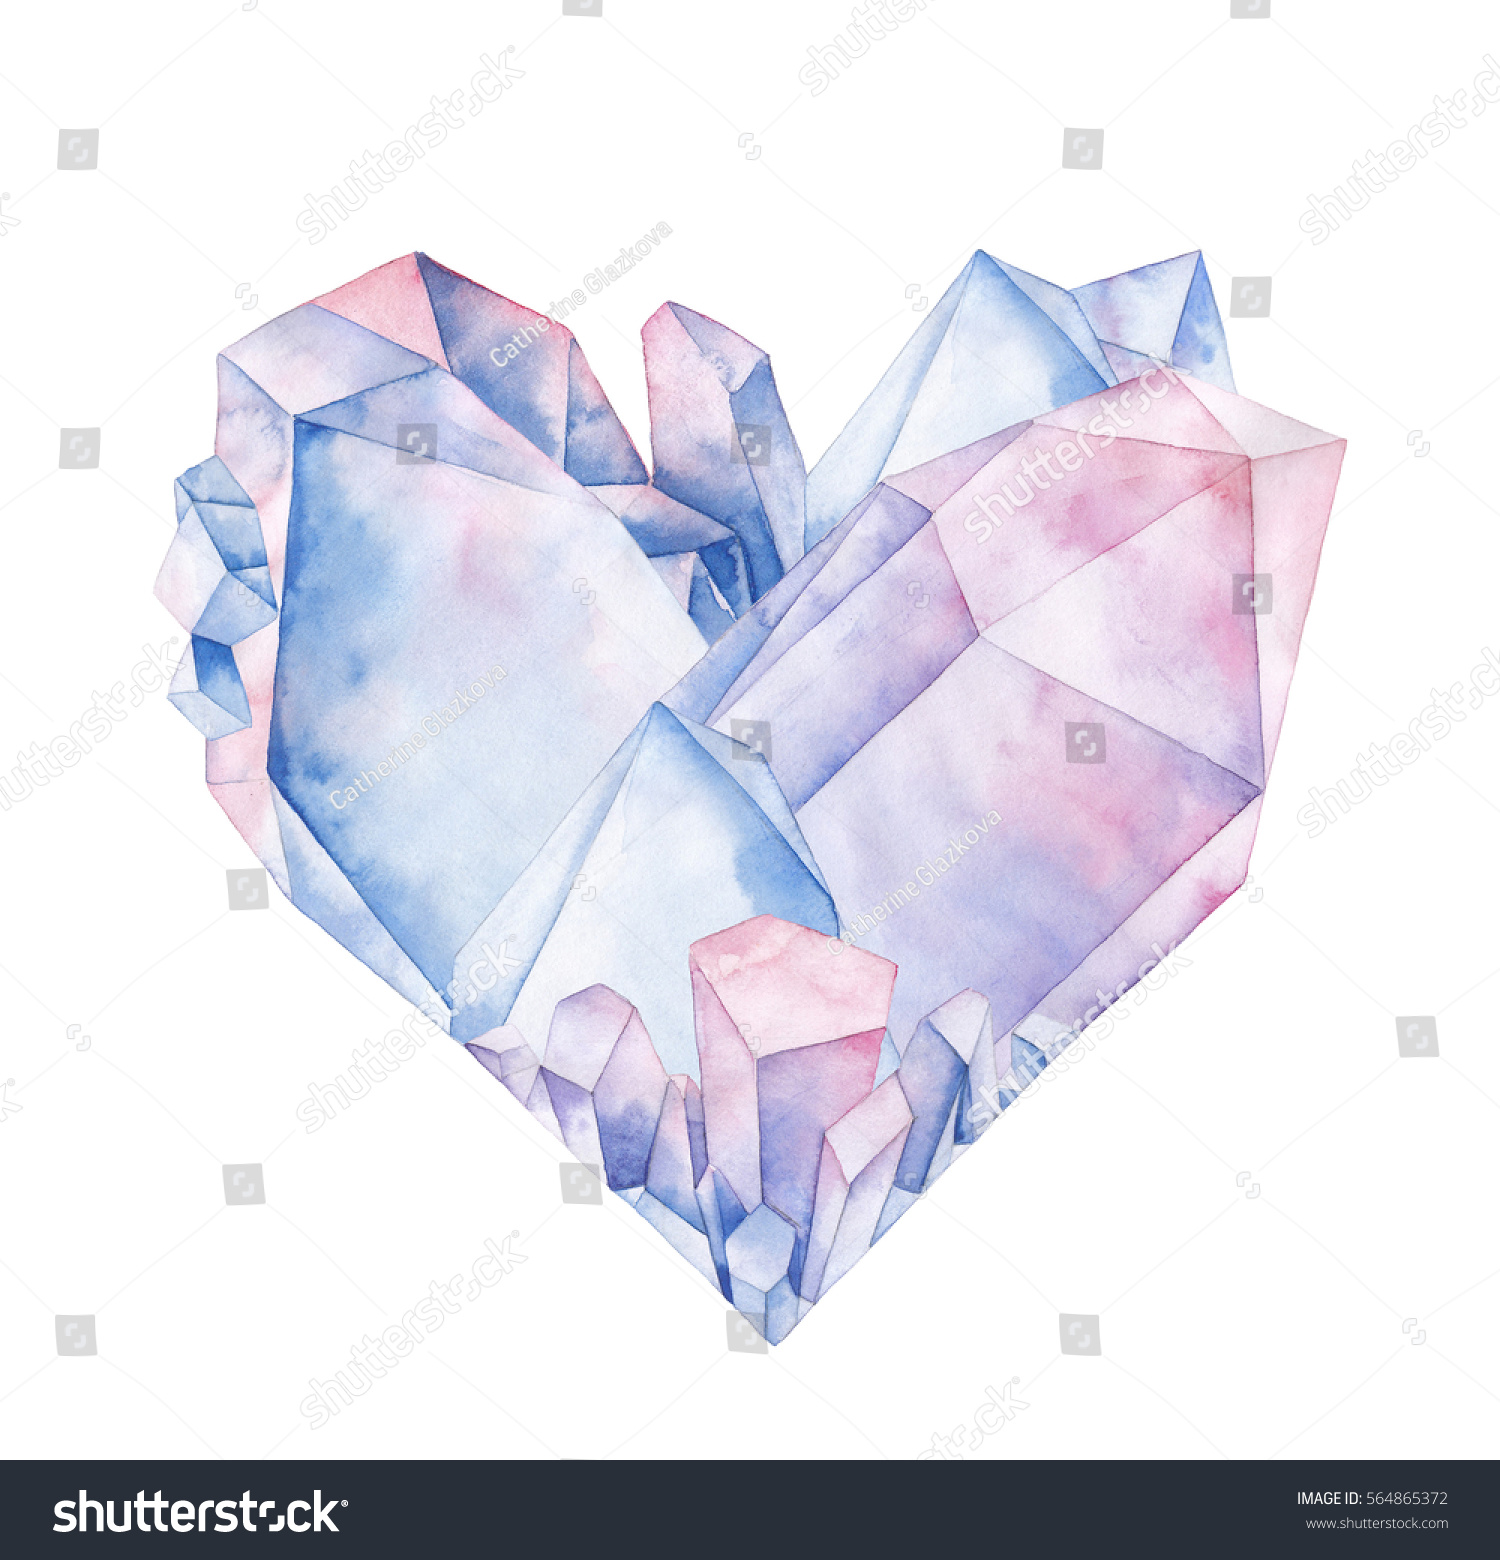 Watercolor Crystals In The Shape Of Heart. Hand Drawn Valentine Day Design  In Pastel Colors